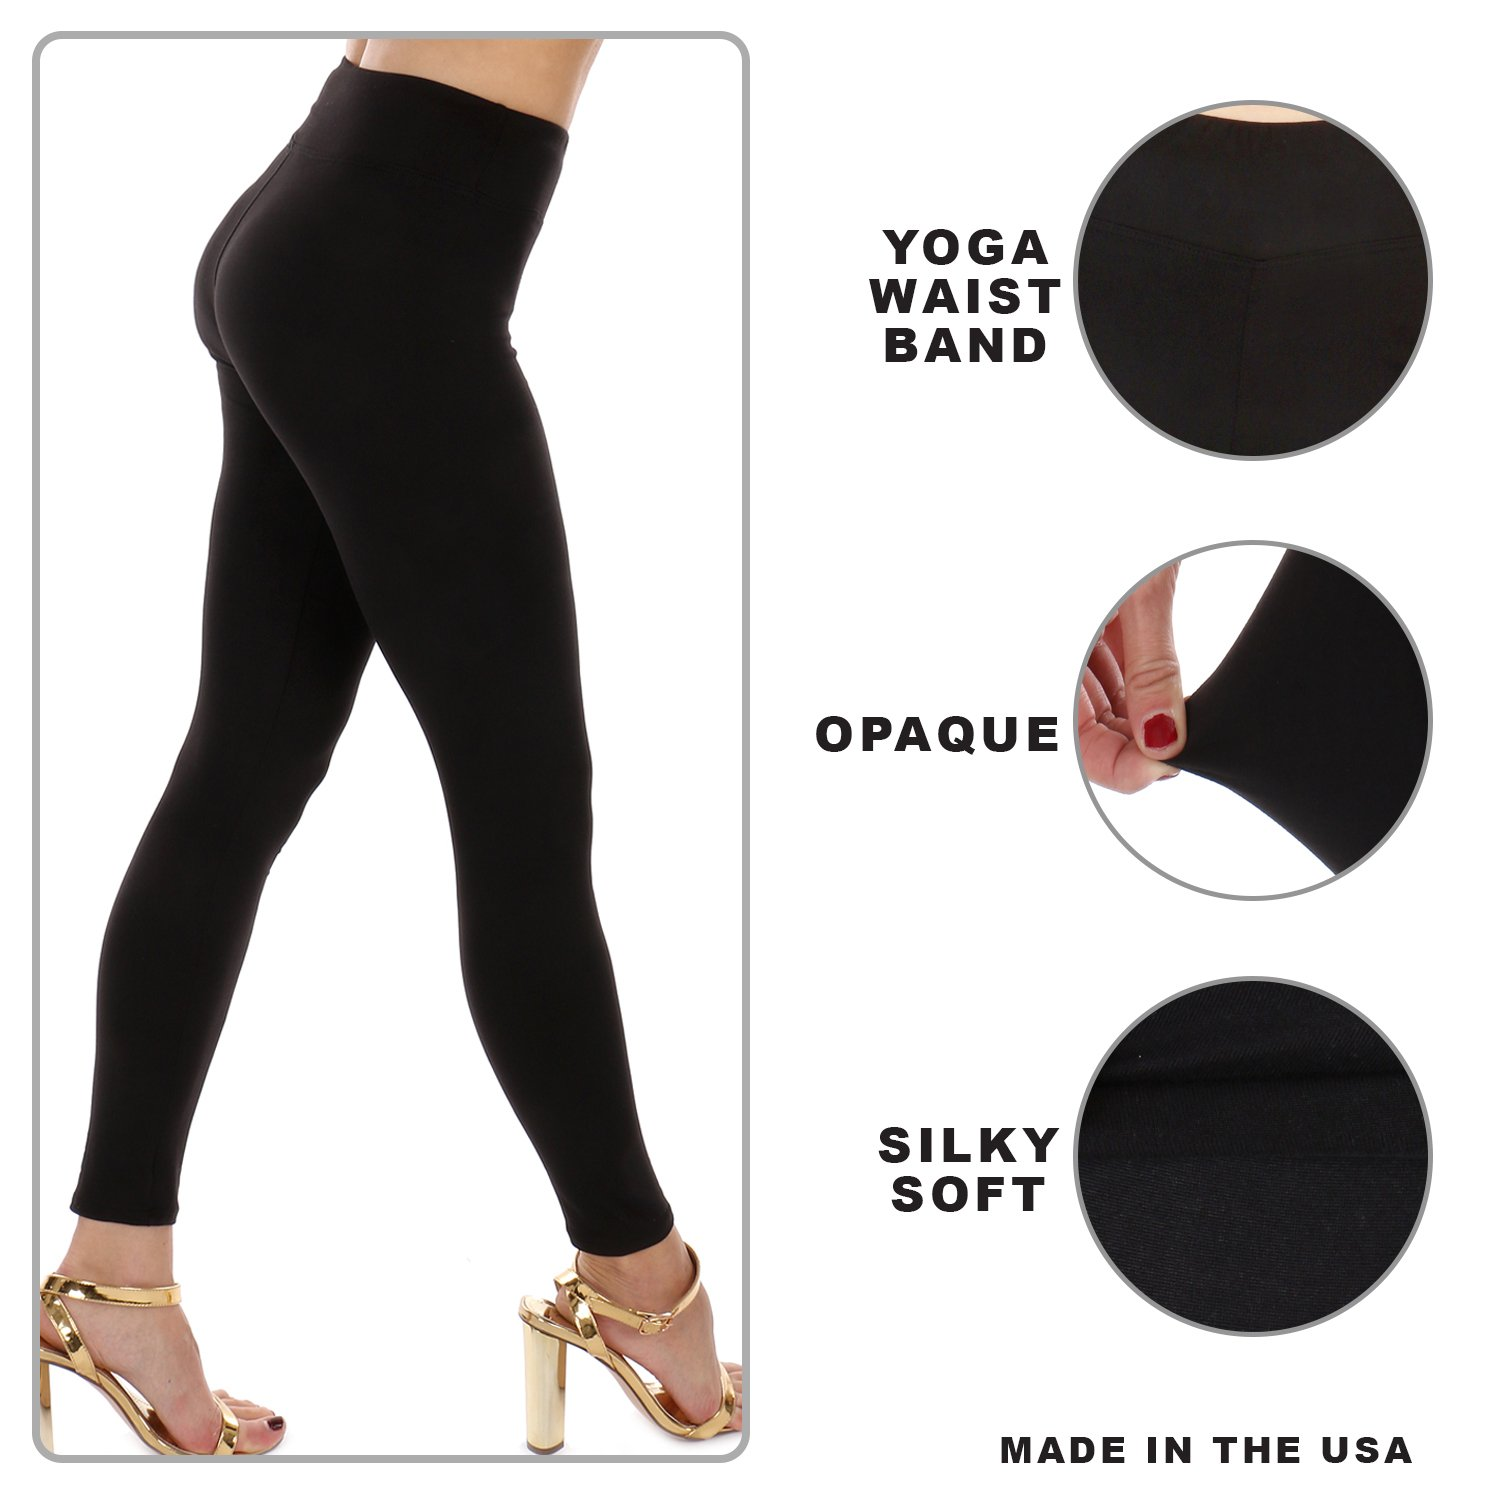 87c0c04ca18995 Premium Soft High Waist Yoga Capri Cropped Leggings-One Size Fits Three  Sizes-Made In The USA (Navy, Median size/7-18 (M, L, 1XL)) at Amazon Women's  ...